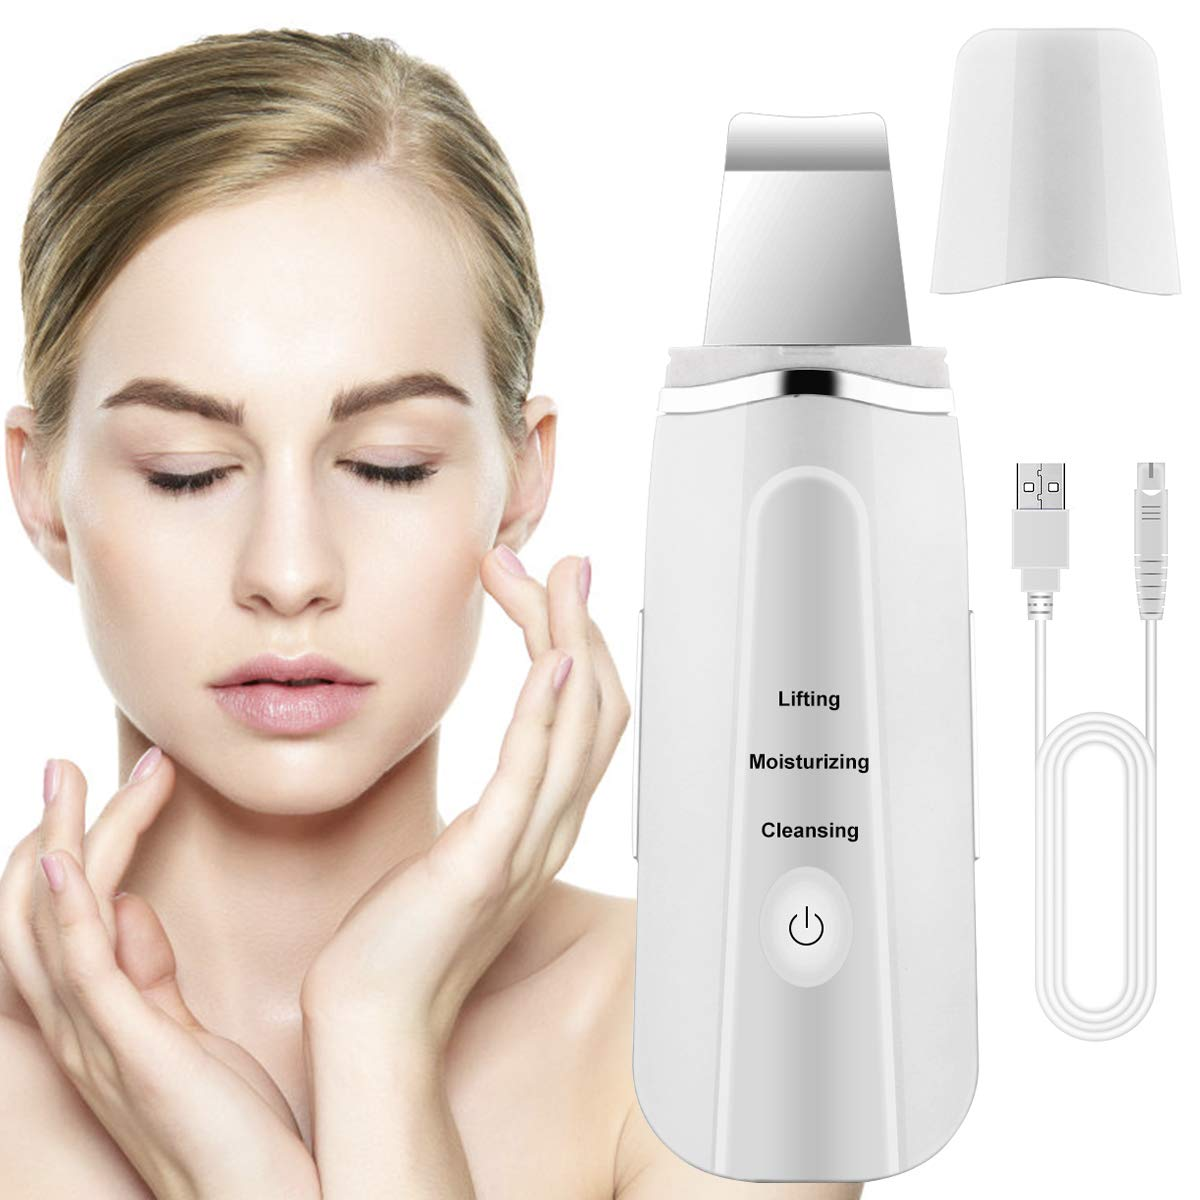 Fancytimes Skin Scrubber Face Remove Blackheads Skin Scrubber Cleaner  Peeling Wrinkle Removal